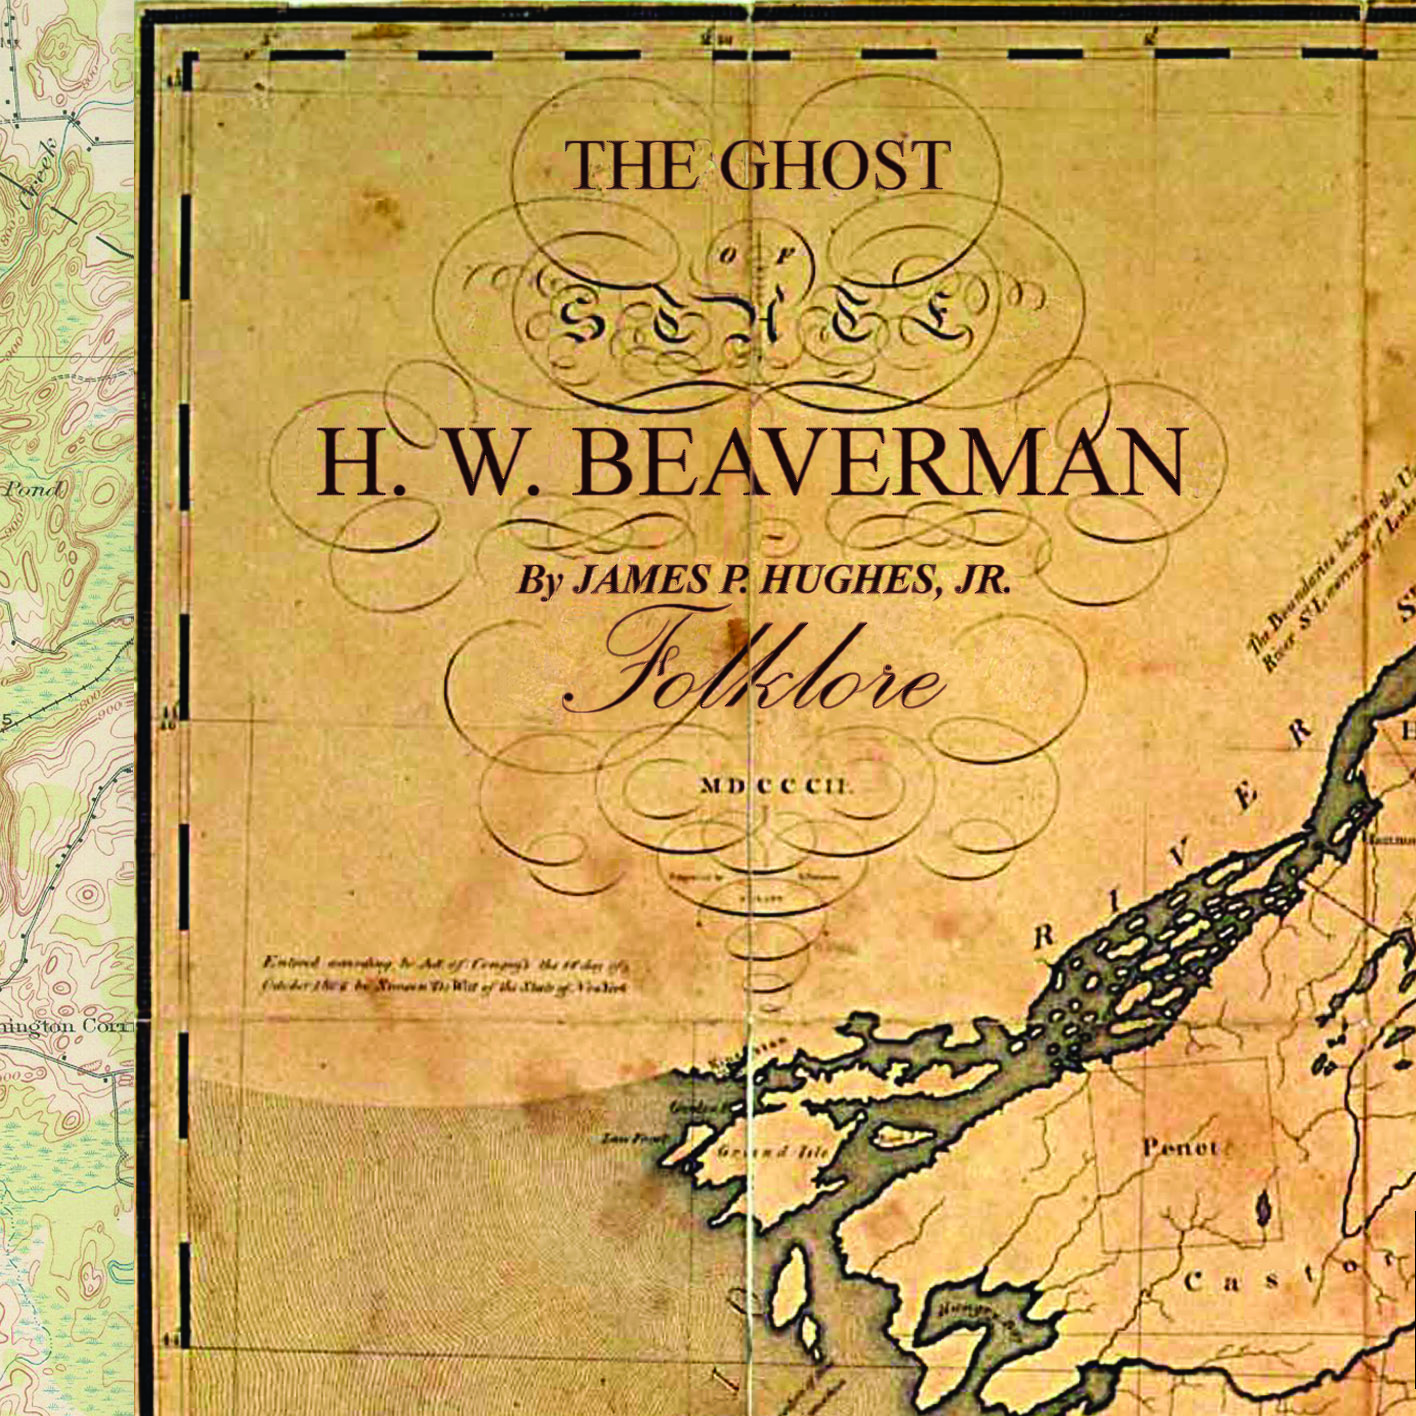 Folklore - The Ghost of HW Beaverman